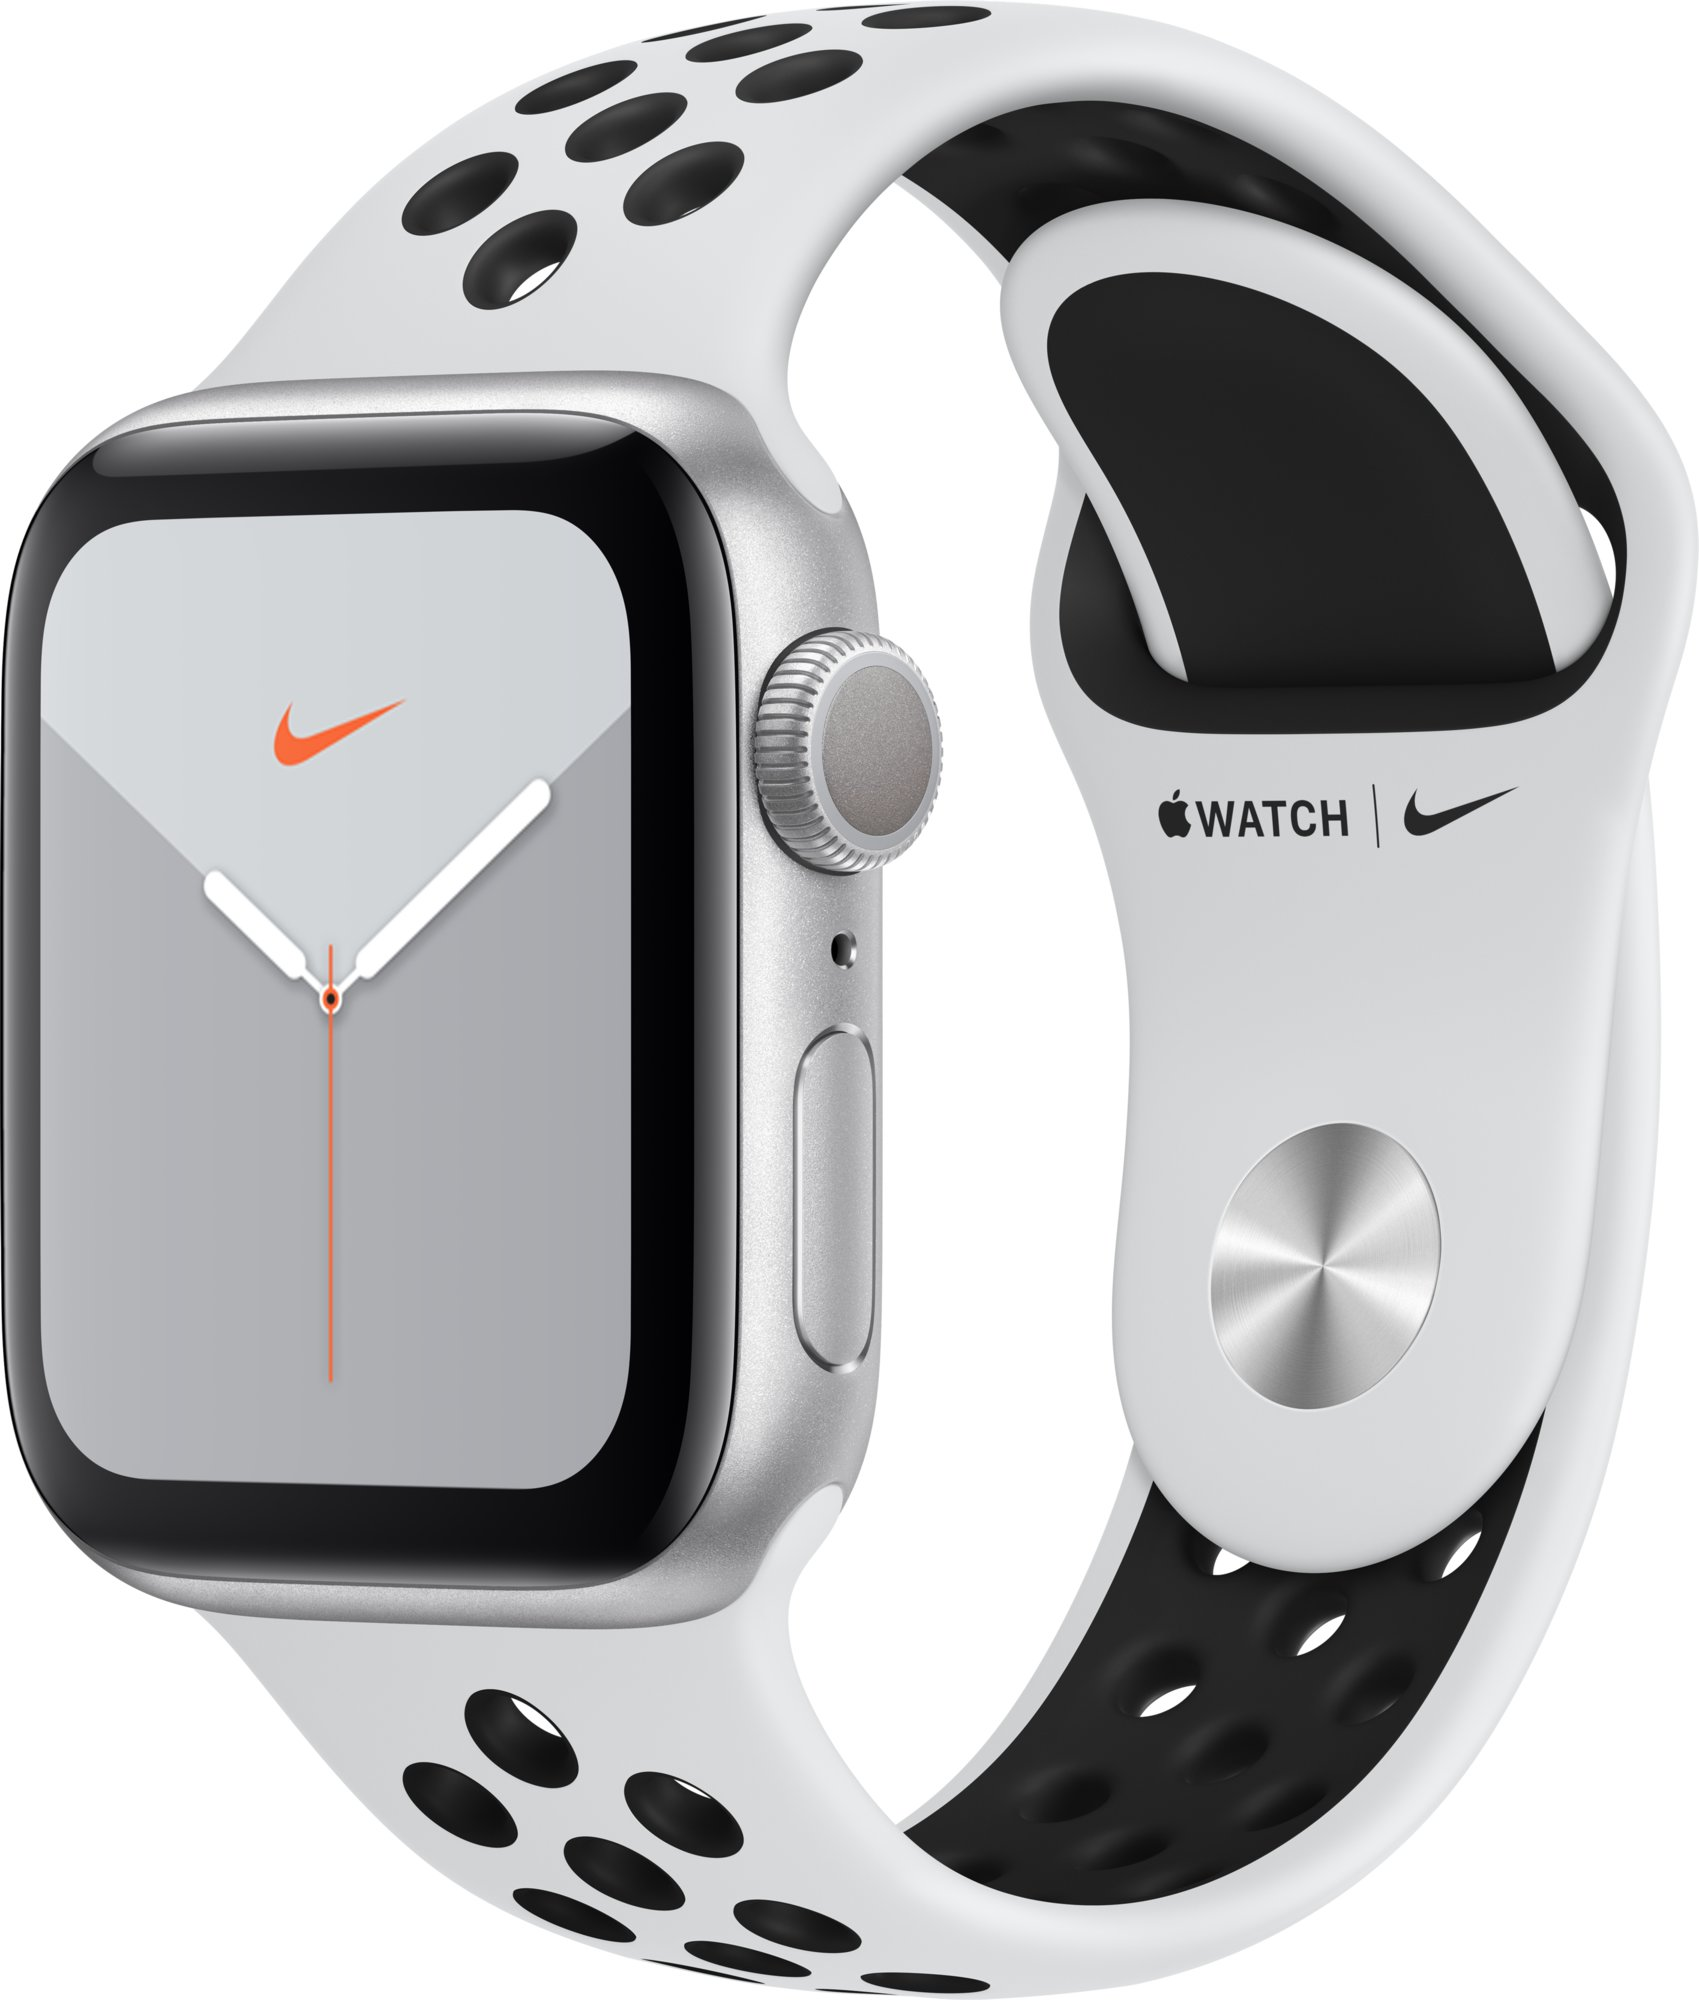 Watch Nike S5, 40mm, Silver/Platinum/Black Nike SB